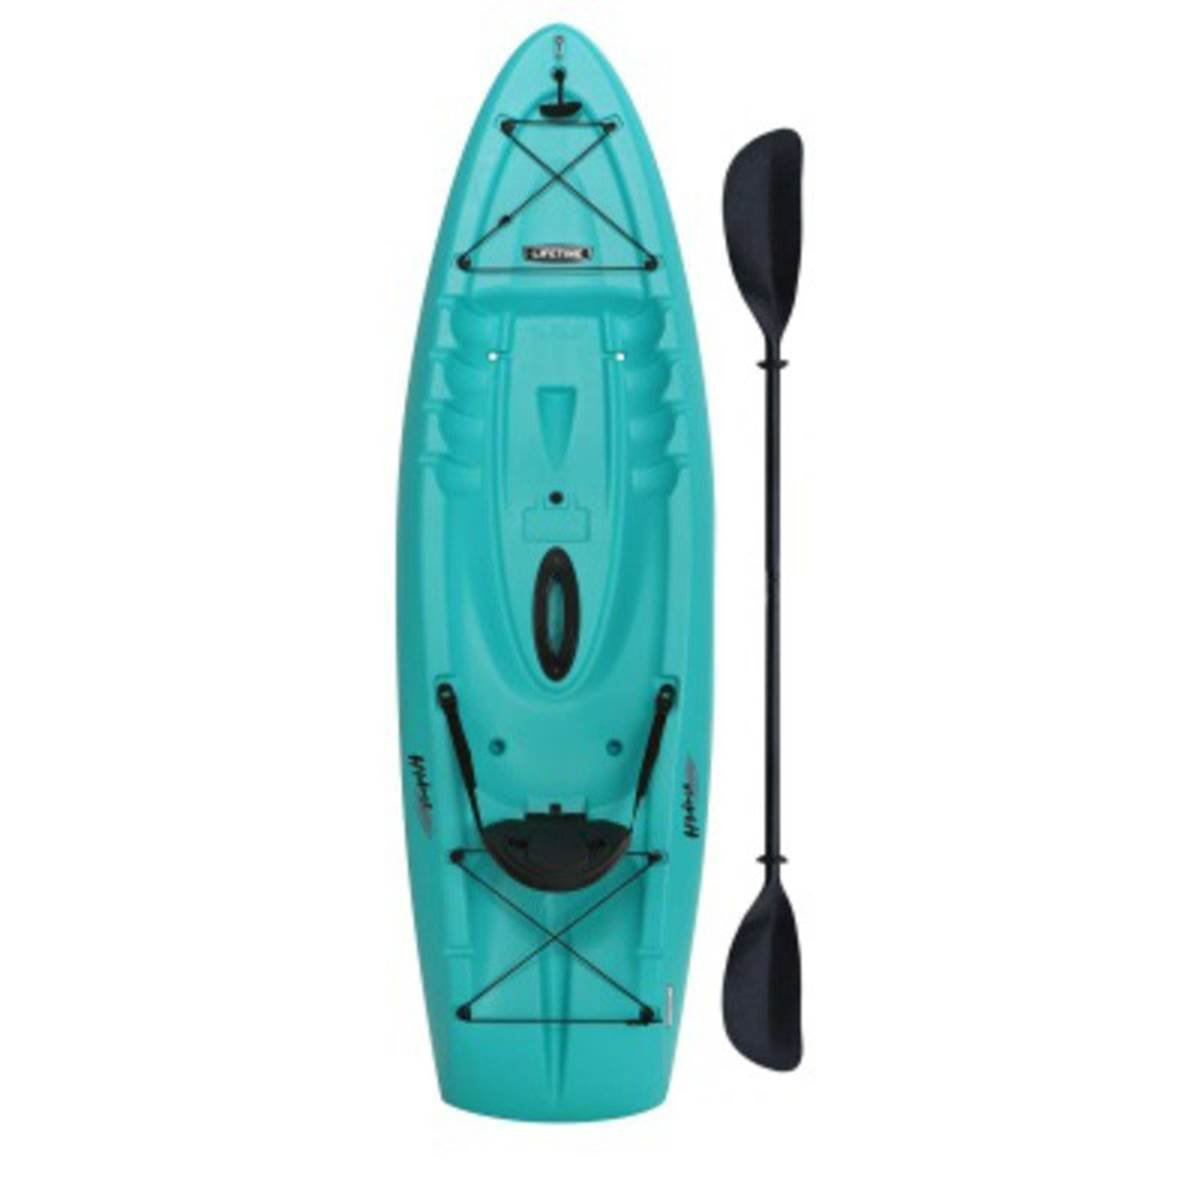 Buy WaterQuest Cayman 8 Kayak in Cheap Price on Alibaba com